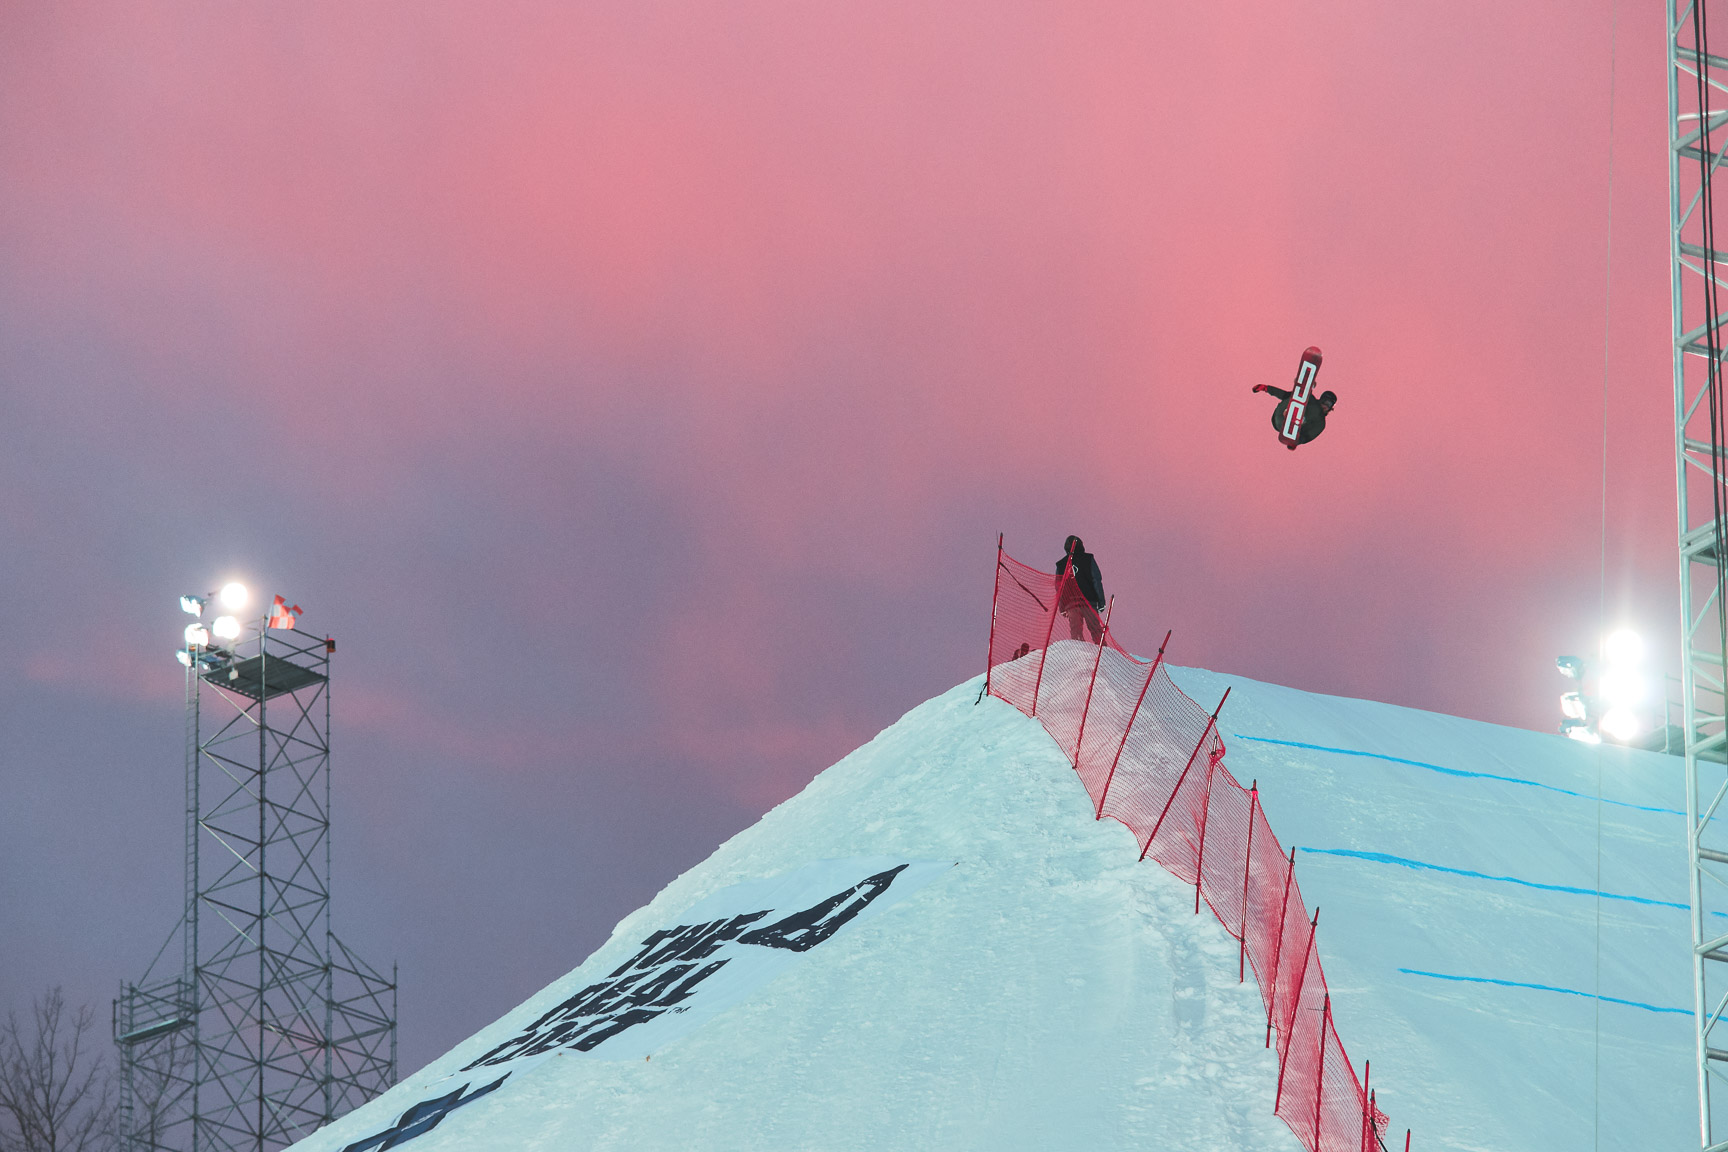 Sebbe De Buck, Men's Snowboard Big Air practice